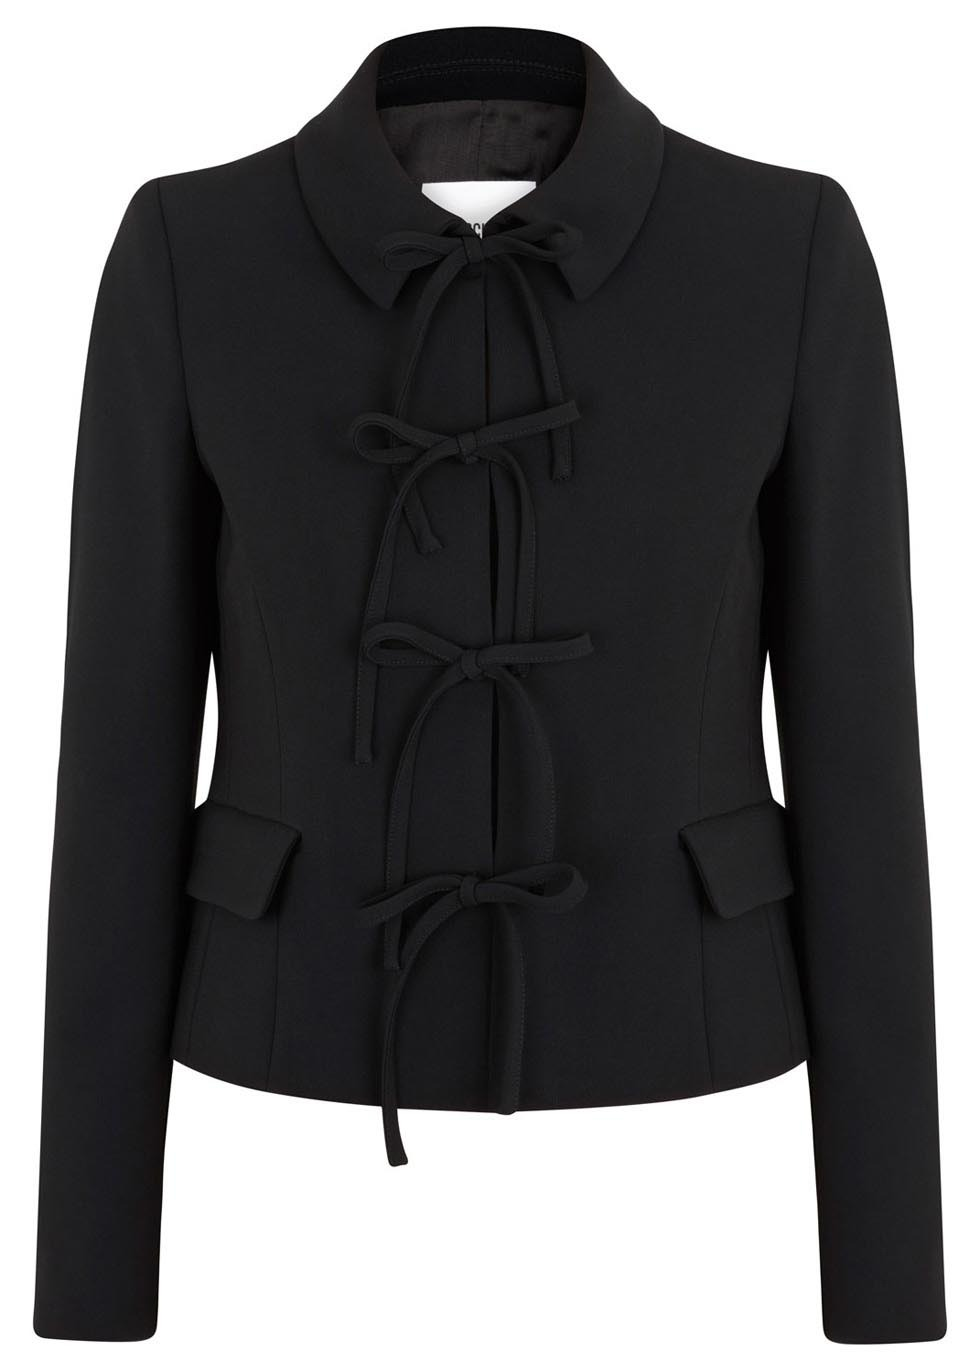 Black Bow Embellished Crepe Jacket - pattern: plain; style: single breasted blazer; predominant colour: black; occasions: work, creative work; length: standard; fit: tailored/fitted; collar: shirt collar/peter pan/zip with opening; sleeve length: long sleeve; sleeve style: standard; texture group: crepes; collar break: high; pattern type: fabric; fibres: viscose/rayon - mix; season: s/s 2014